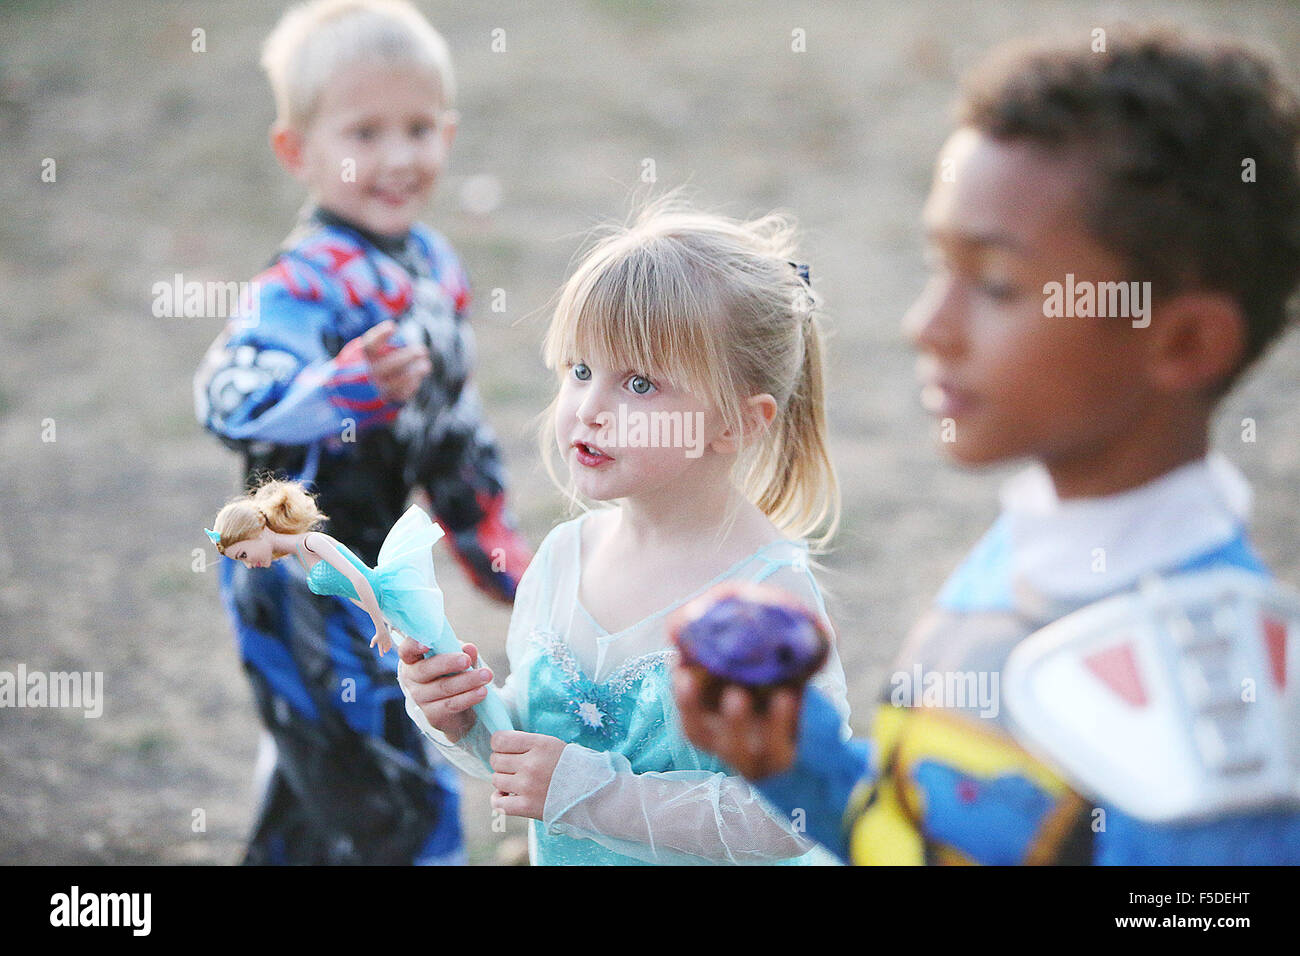 Napa, CA, USA. 29th Oct, 2015. Dressed as Elsa from Disney's Frozen, Phoebe DeCrevel carries a doll of the same - Stock Image